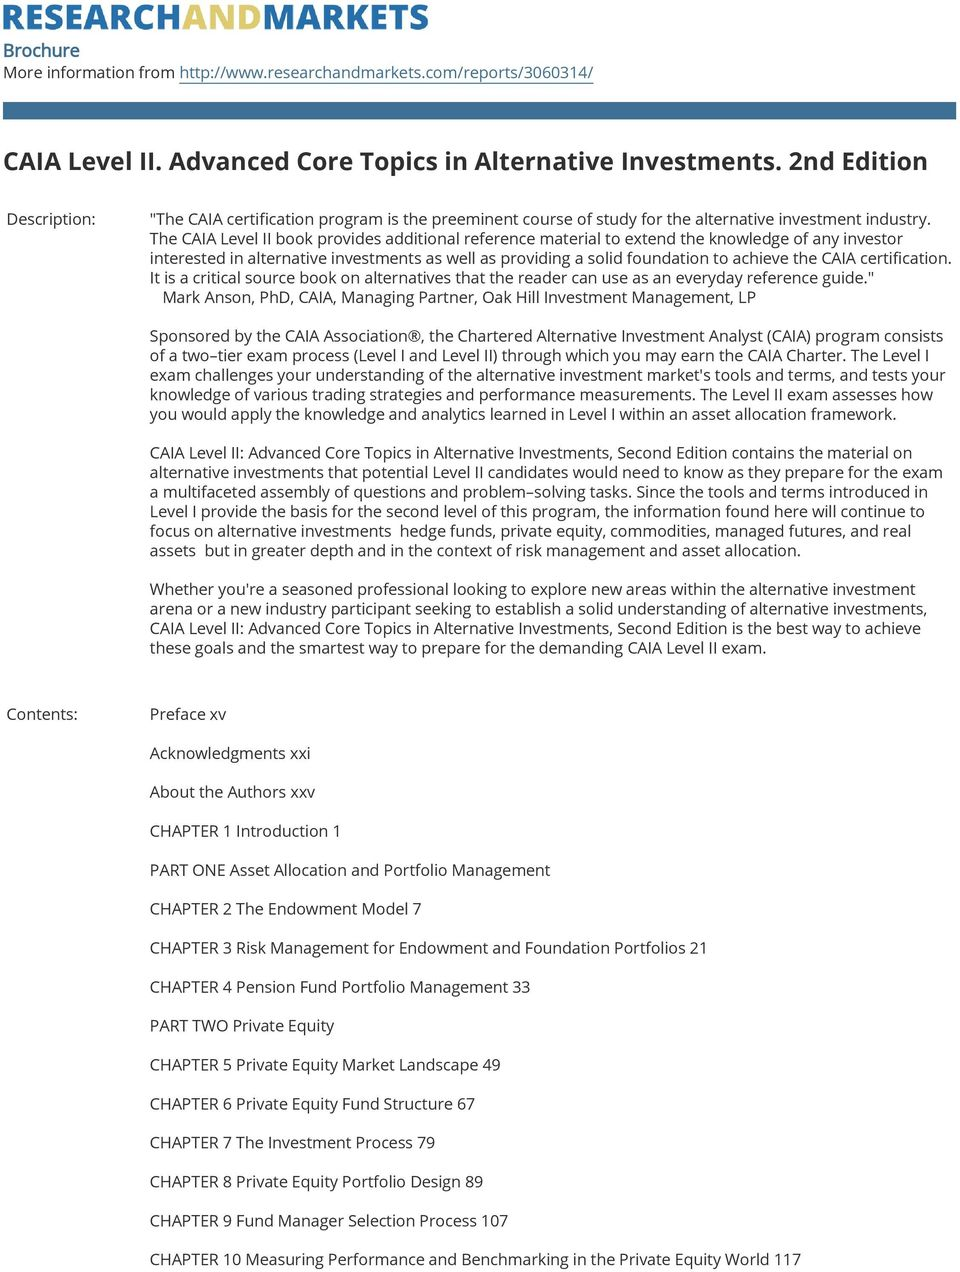 Caia Level Ii Advanced Core Topics In Alternative Investments 2nd